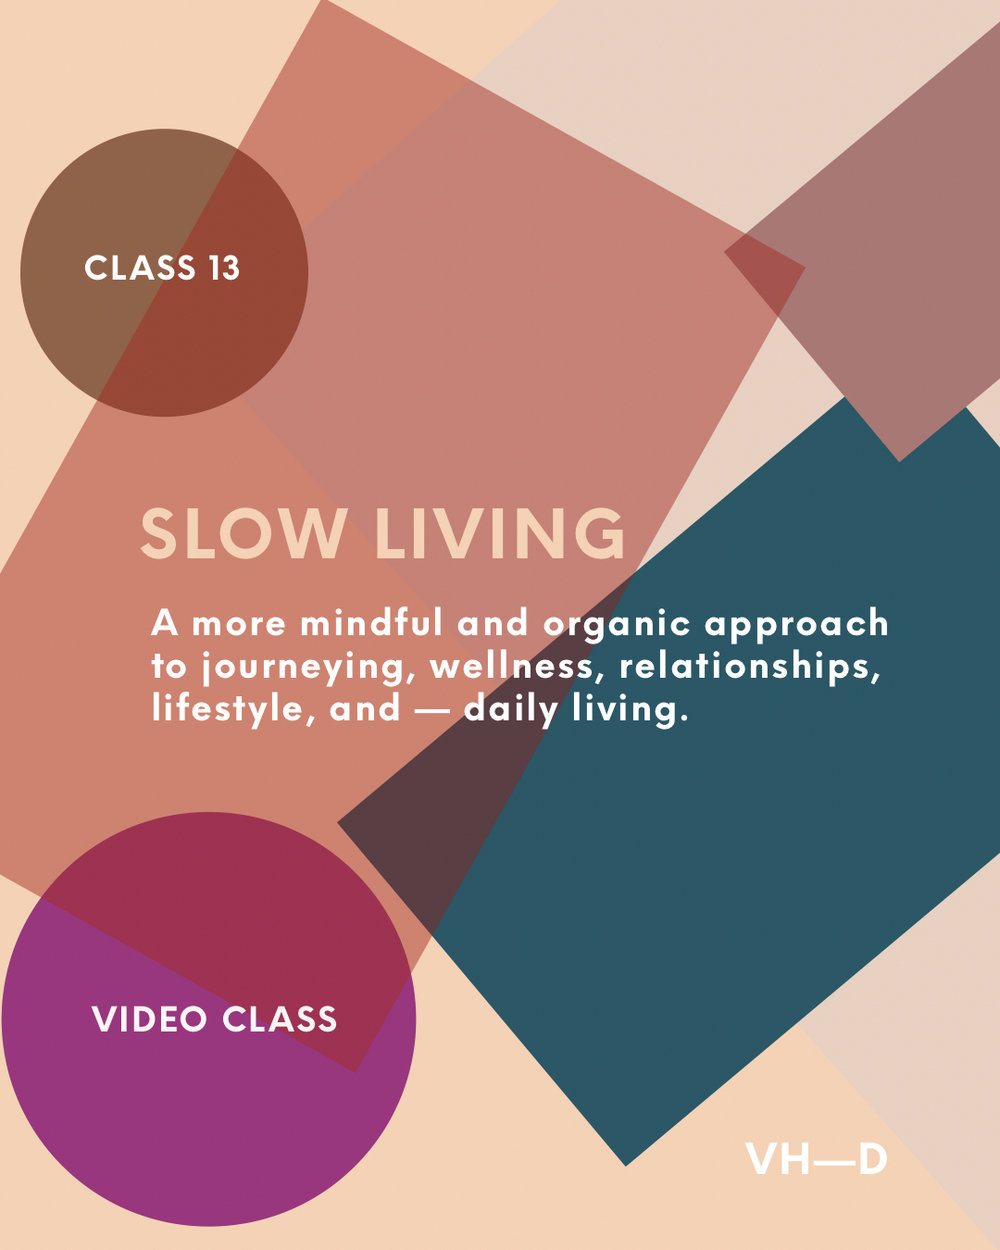 Class 13: Slow Living - Video ClassOften our society and culture can be a trigger. We are tempted to always be on, to always be going, to always be doing, and to always be reacting. Living at such a pace is un-aligned with our true nature, and it causes imbalances and a lack of true fulfillment.Settling for a life doesn't serve us on a deep and nourishing level shall not be tolerated, from here on out. Fist pump + deep exhale!From nurturing yourself and your life deeper, to living towards balance, wholeness, and healing, to knowing how to live a more engaged, present, intentional, full, and organic life, slow living is about all of this. And this will be our focus in class 13.